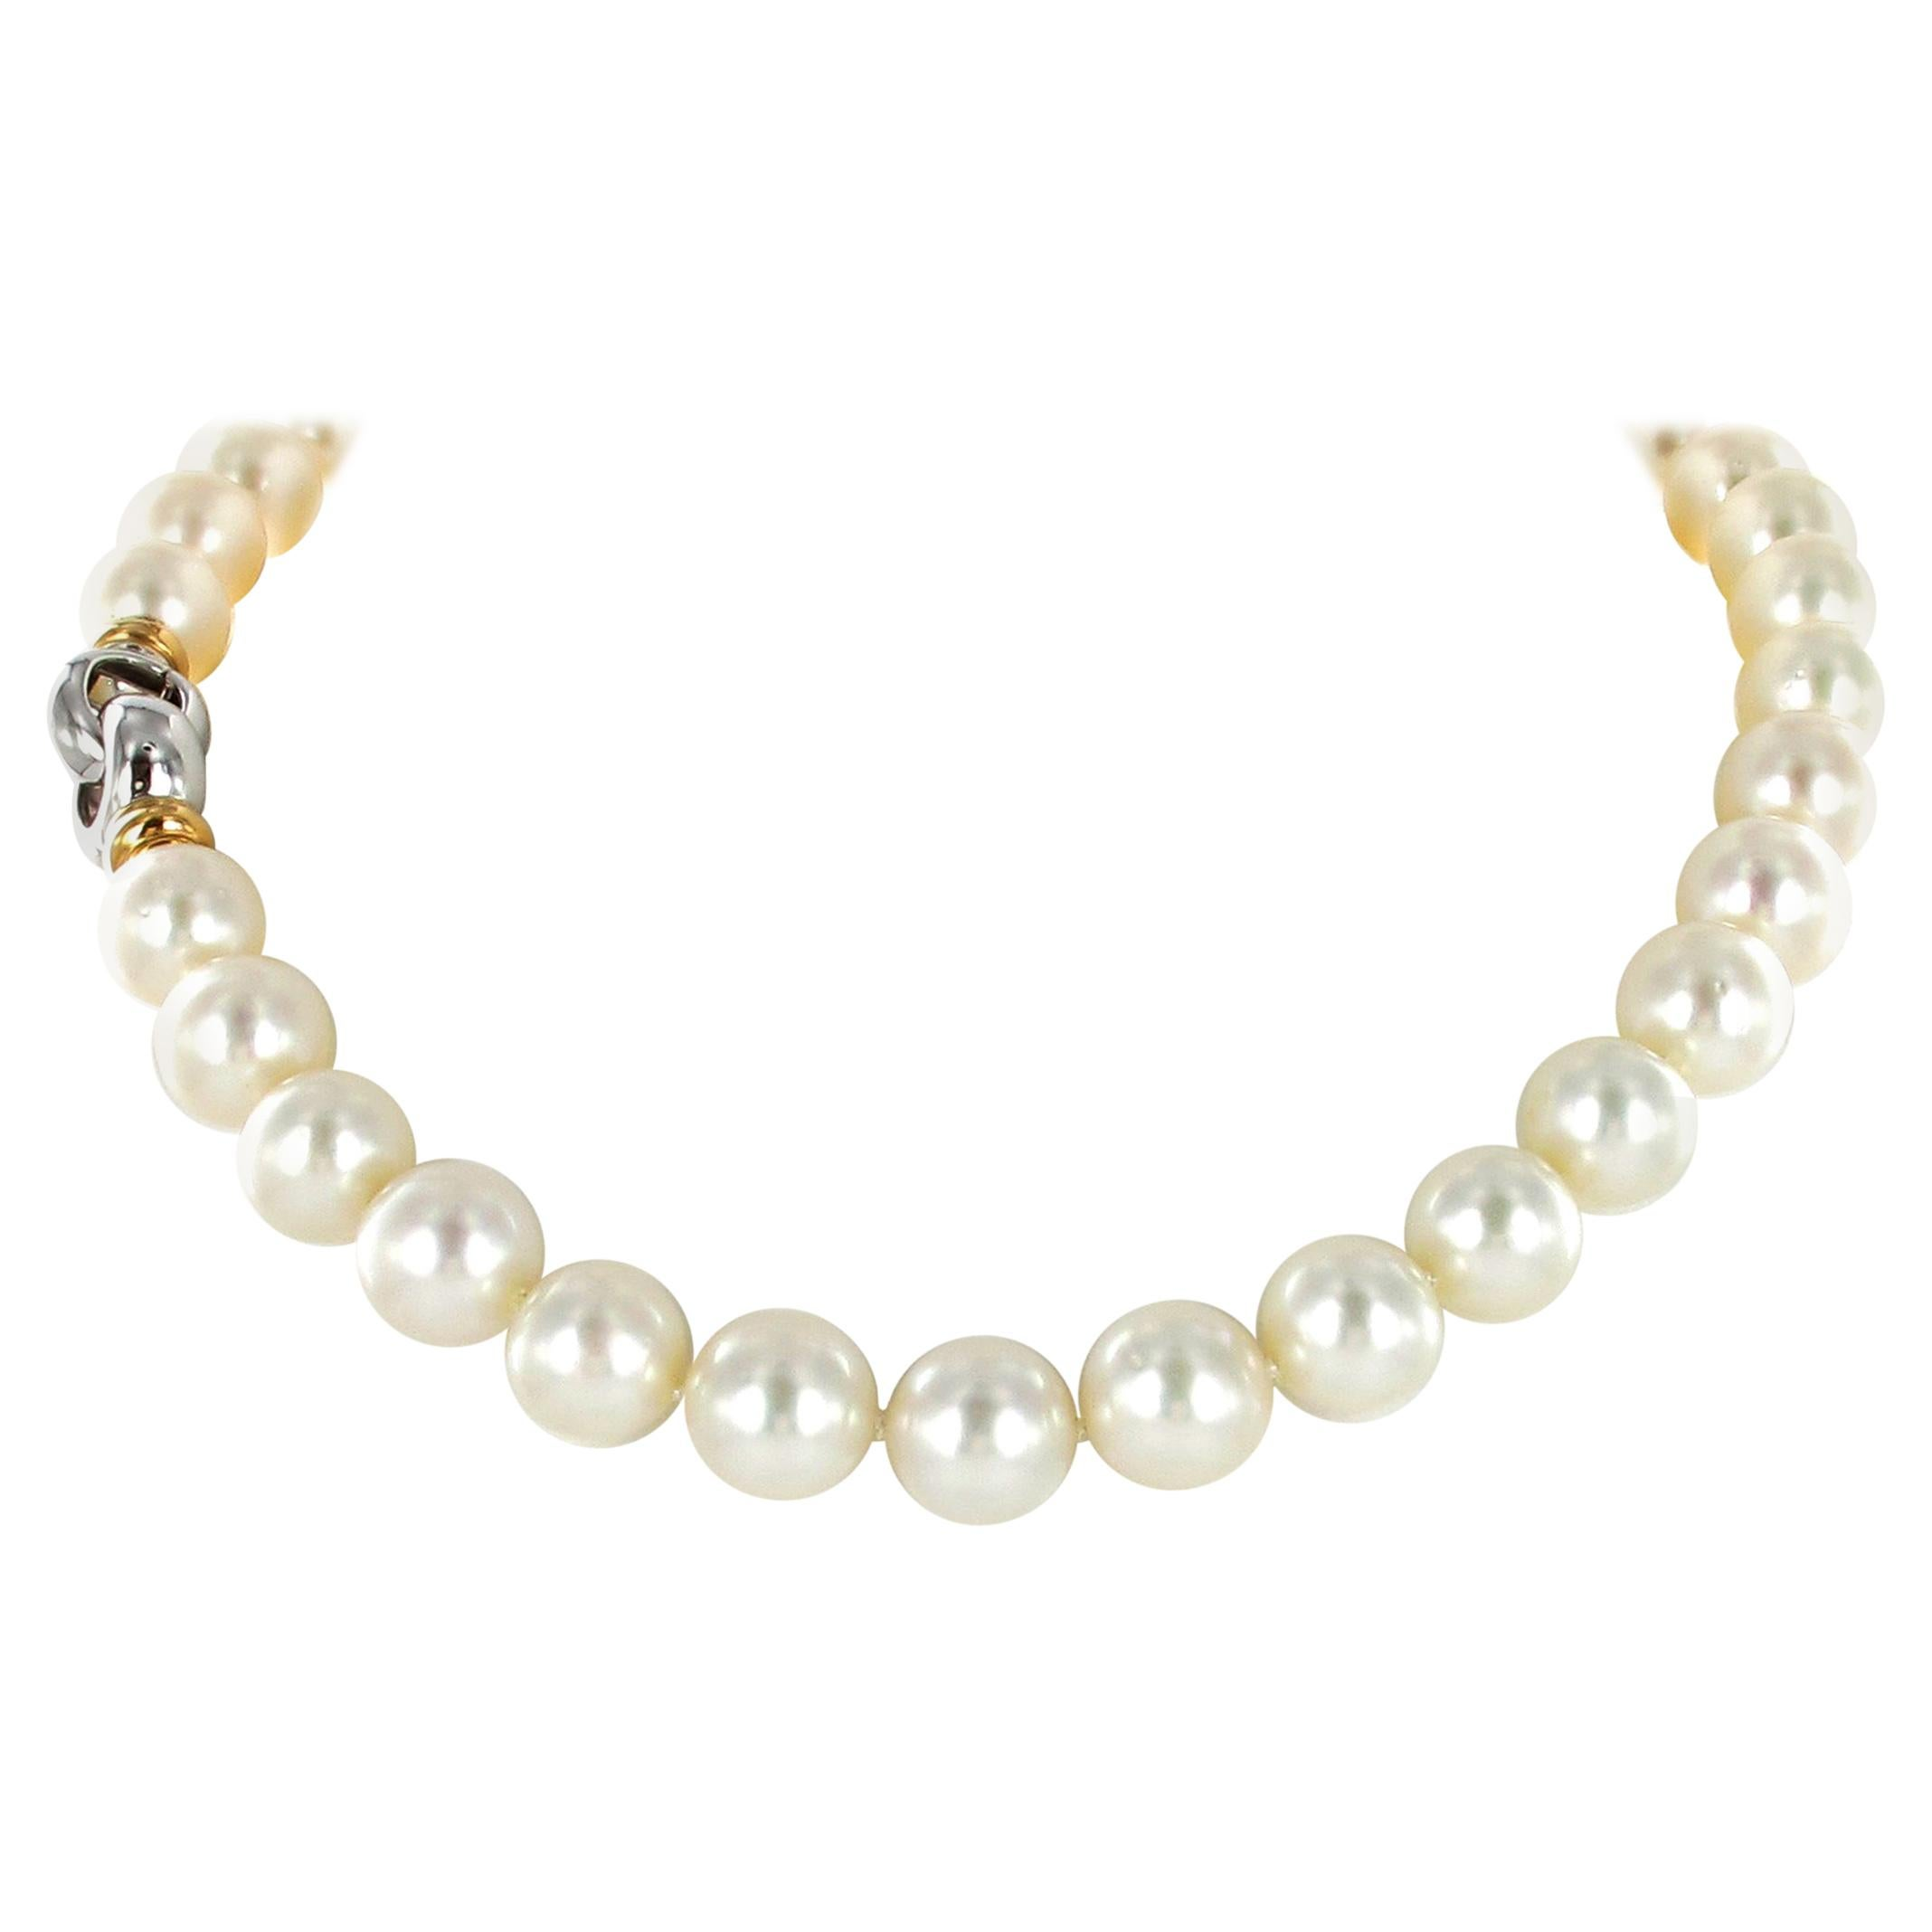 South Sea Cultured Pearl Necklace with Clasp in 18 Karat White and Rose Gold